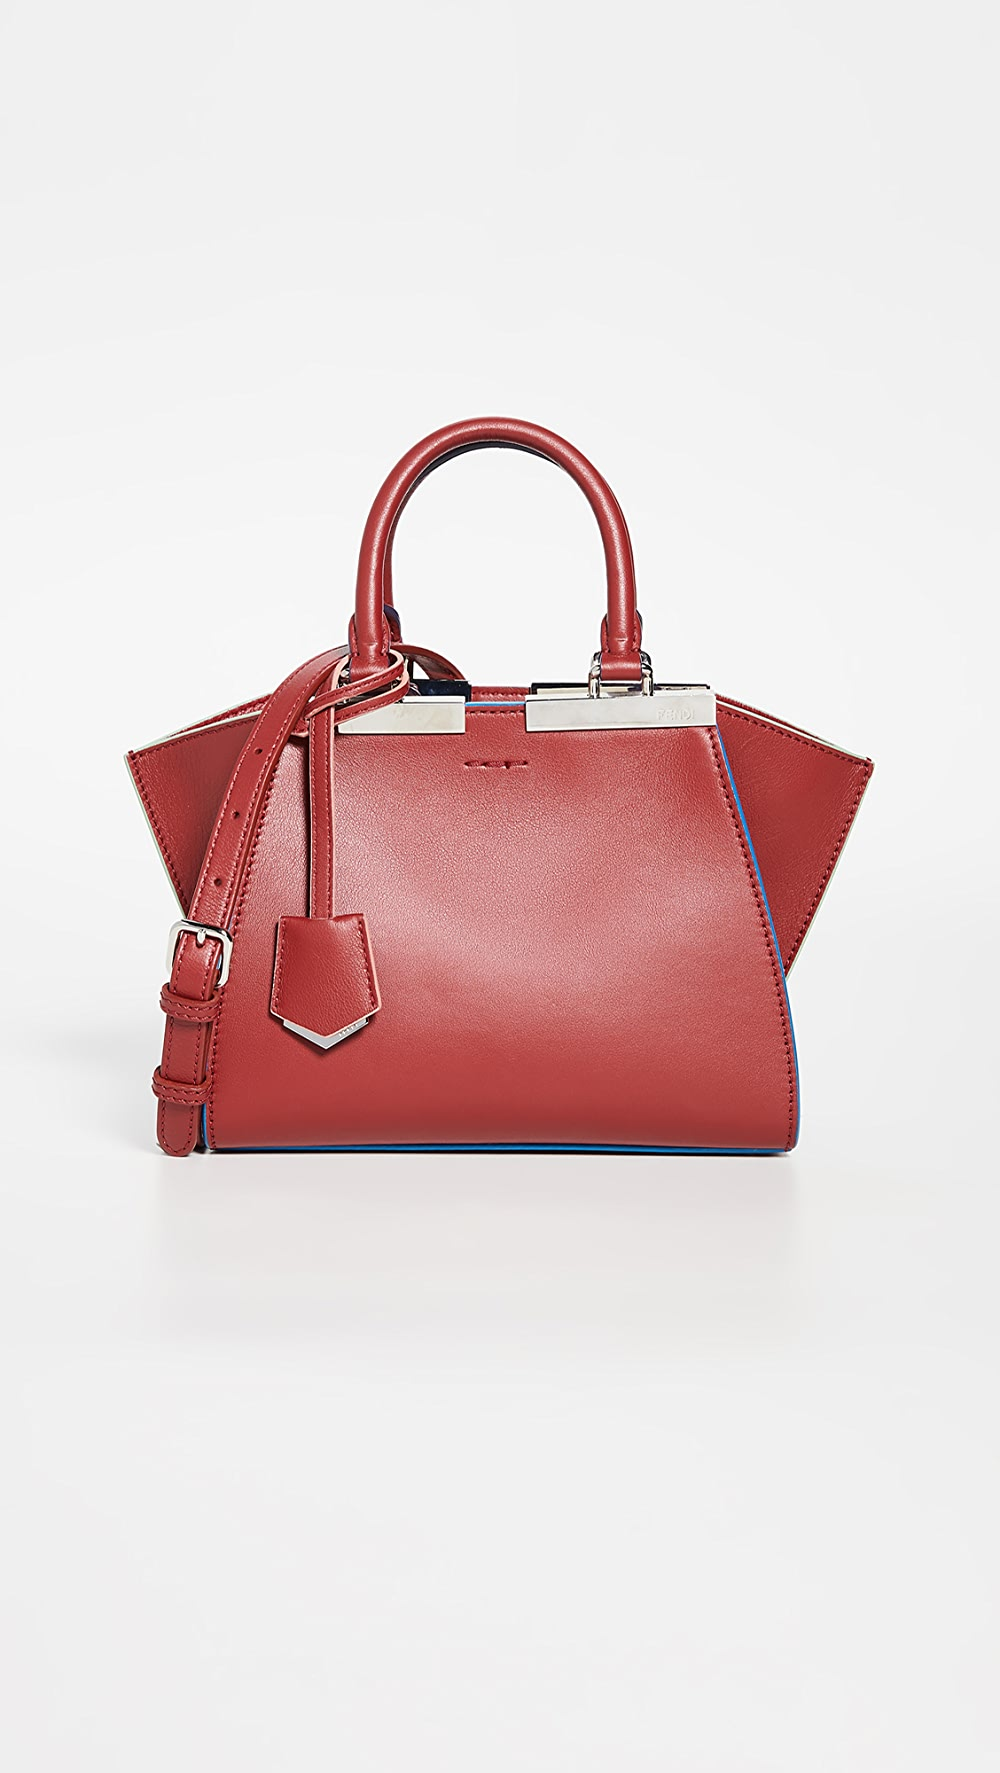 Sensible What Goes Around Comes Around - Fendi Red Leather Mini 3 Jours To Adopt Advanced Technology